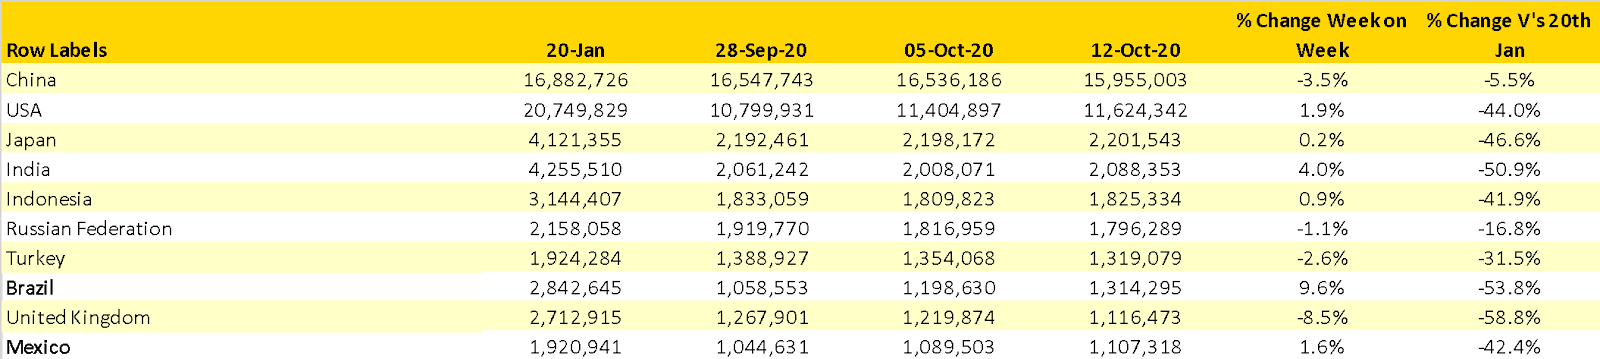 Scheduled Capacity, Top 10 Countries Markets